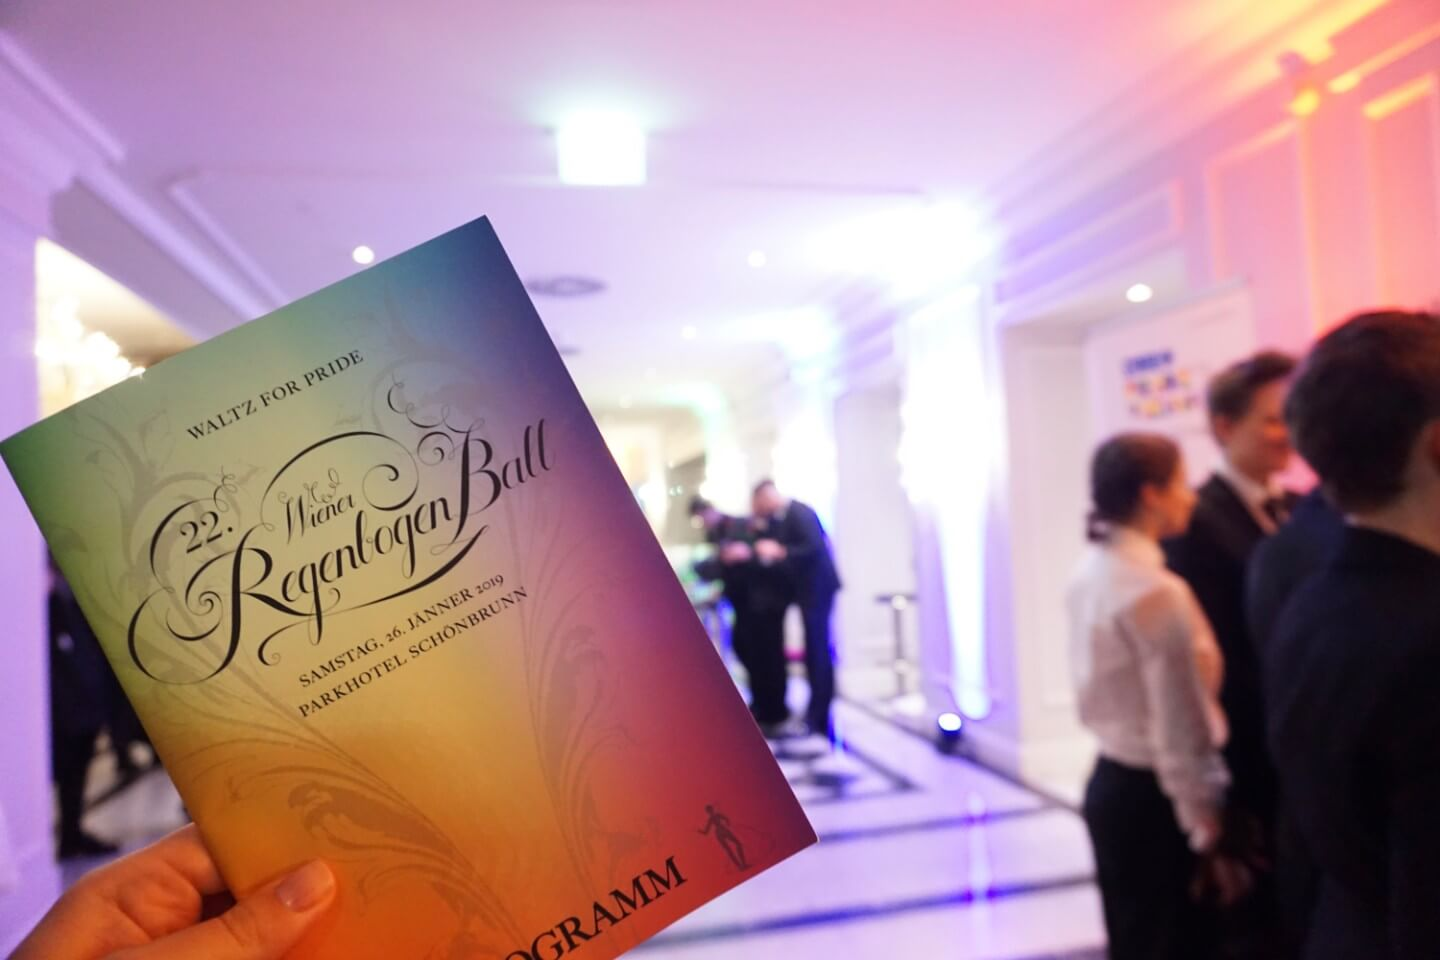 Vienna Rainbow Ball - Wiener Regebogenball Program - The most elegant LGBTQ event in Austria